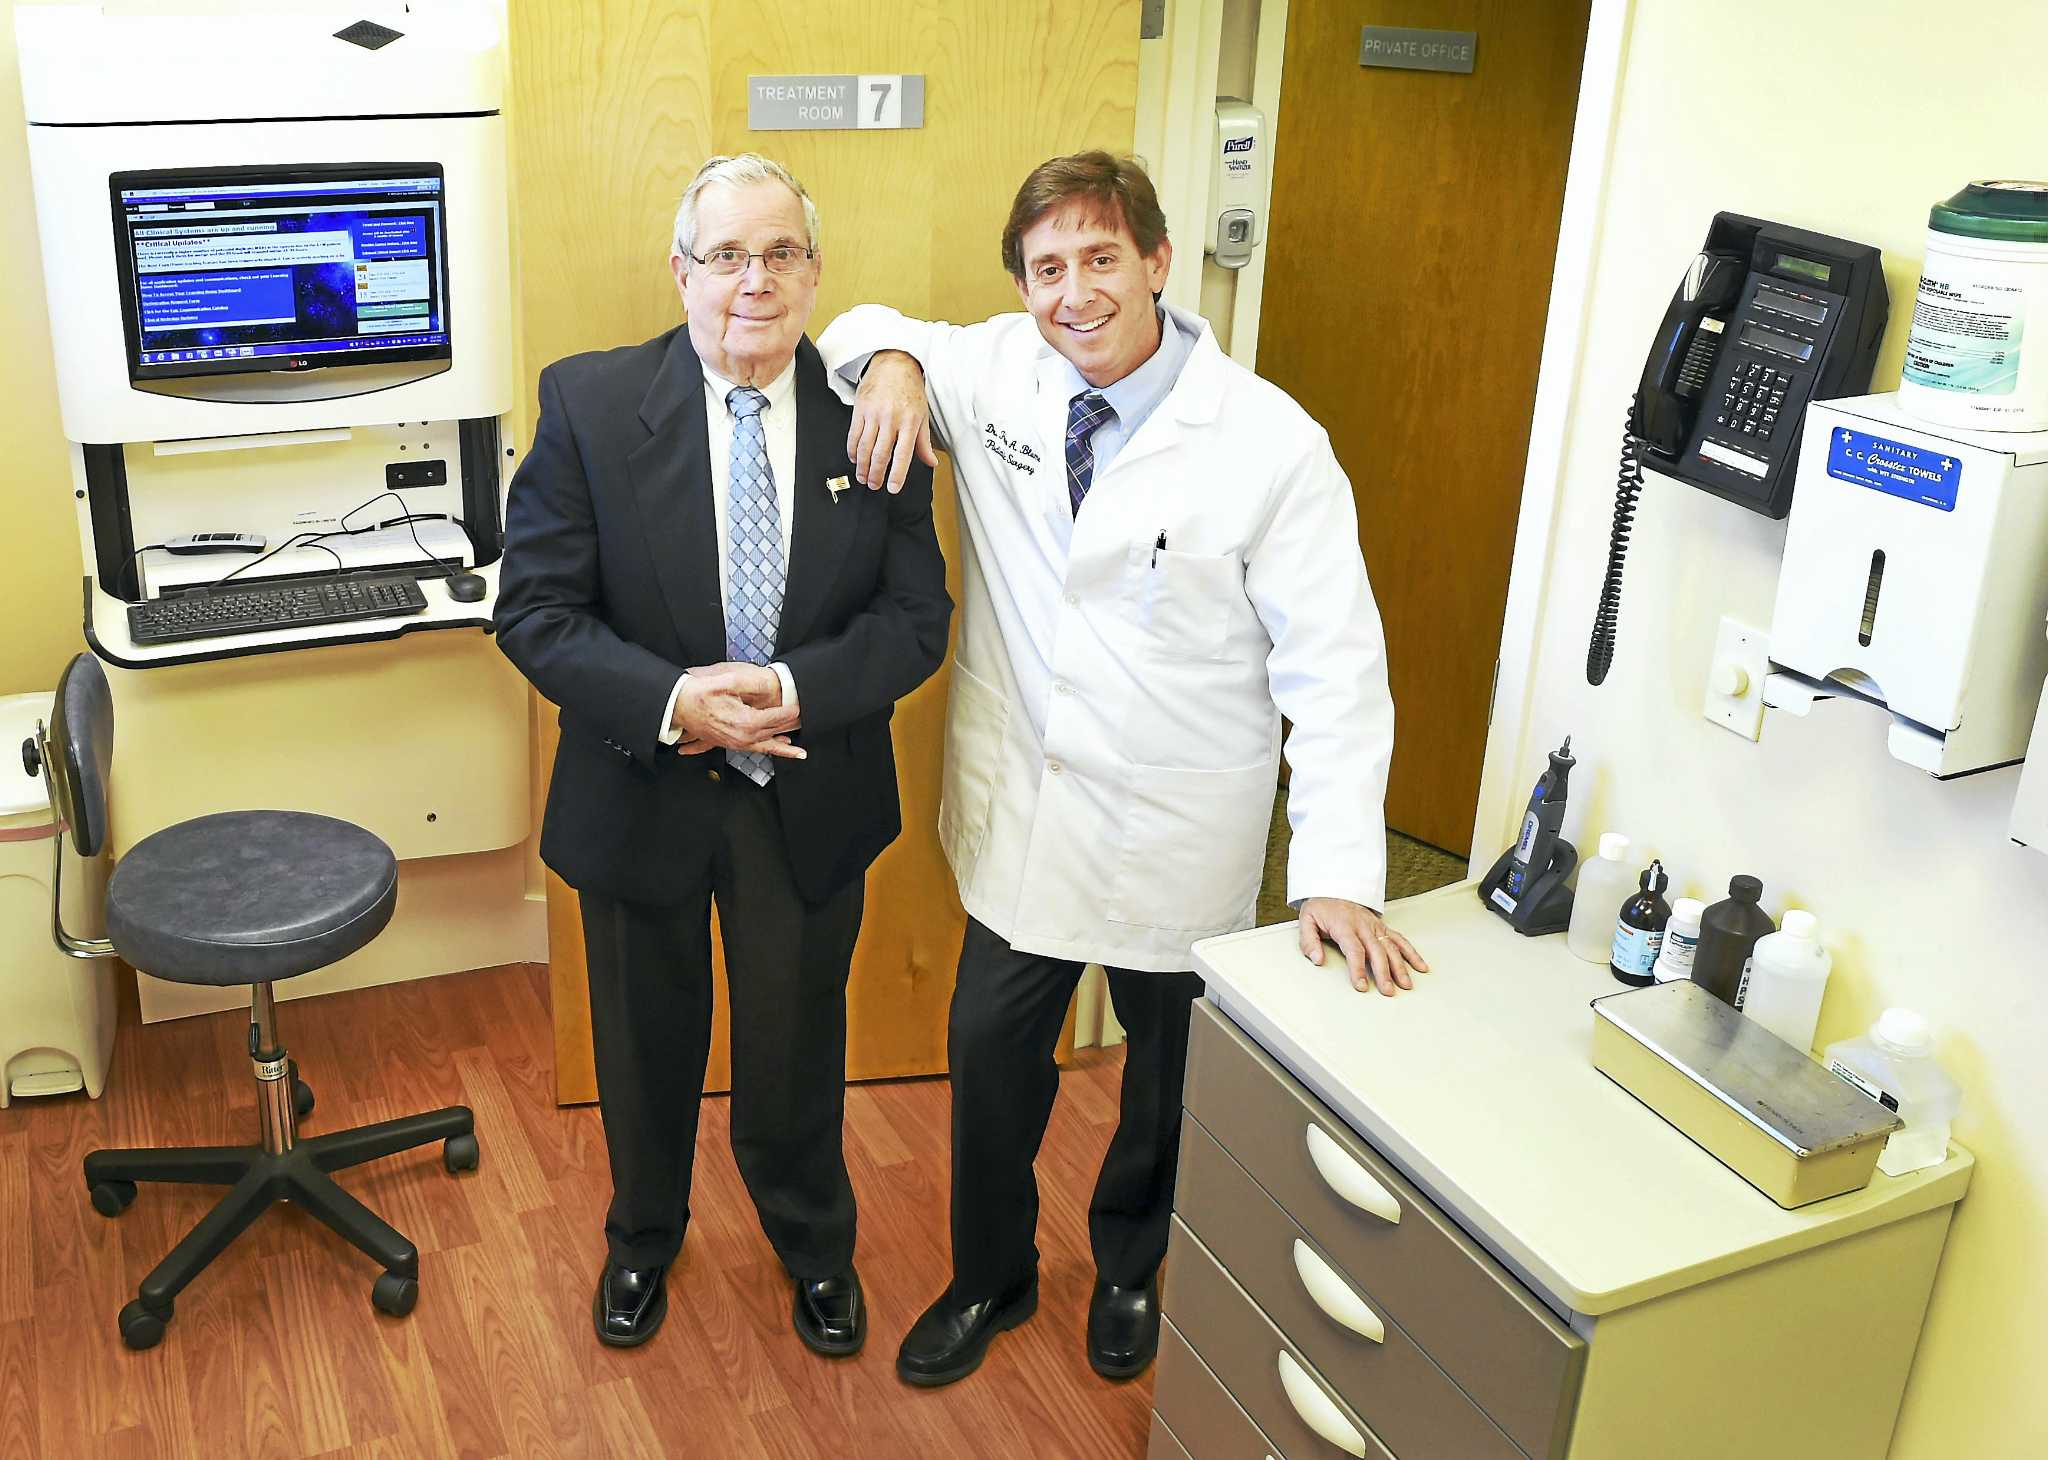 New Haven Father Son Podiatrists See Big Steps Over 59 Years New